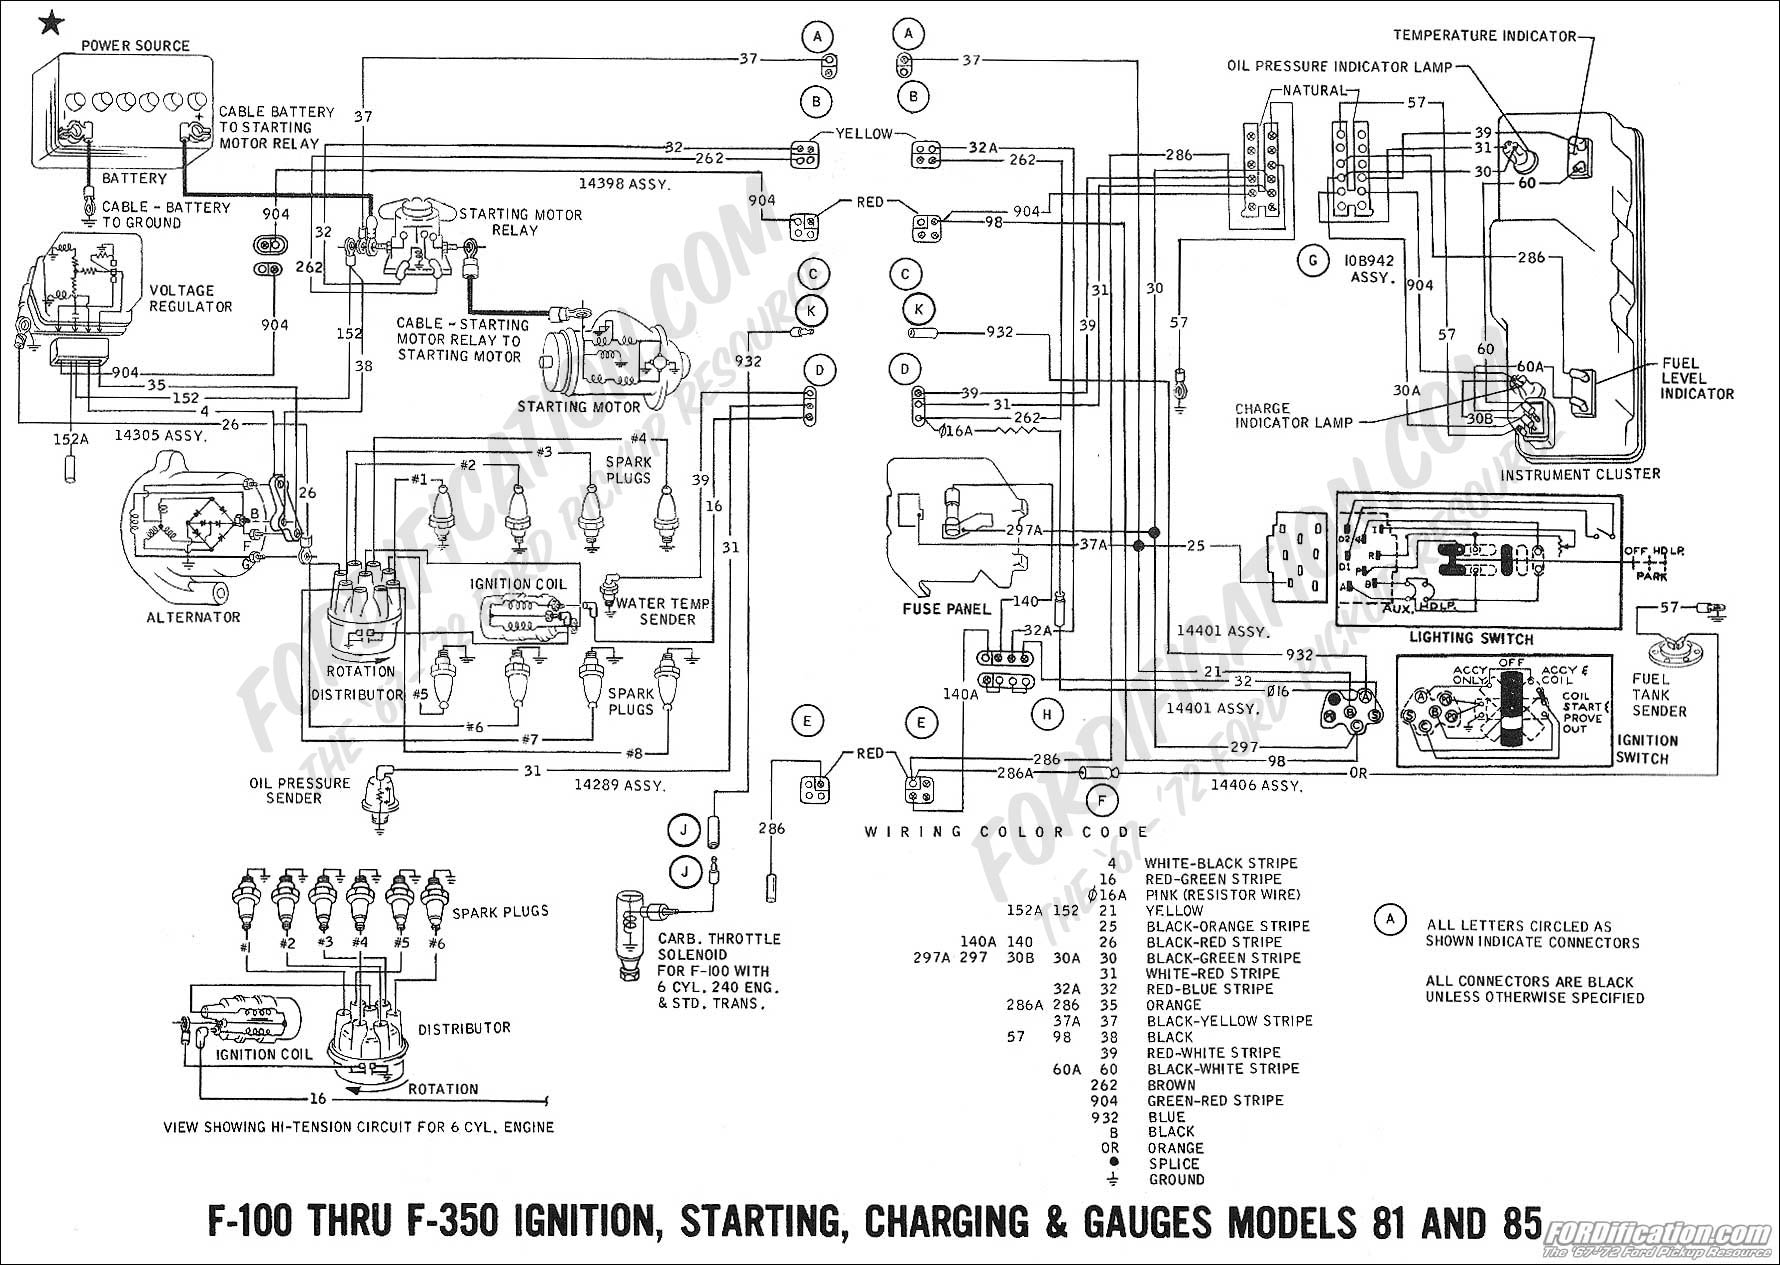 pt cruiser engine wiring harness wiring library Motor Starter Wiring Diagram ford truck technical drawings and schematics section h wiring diagrams 2001 chrysler pt cruiser wiring